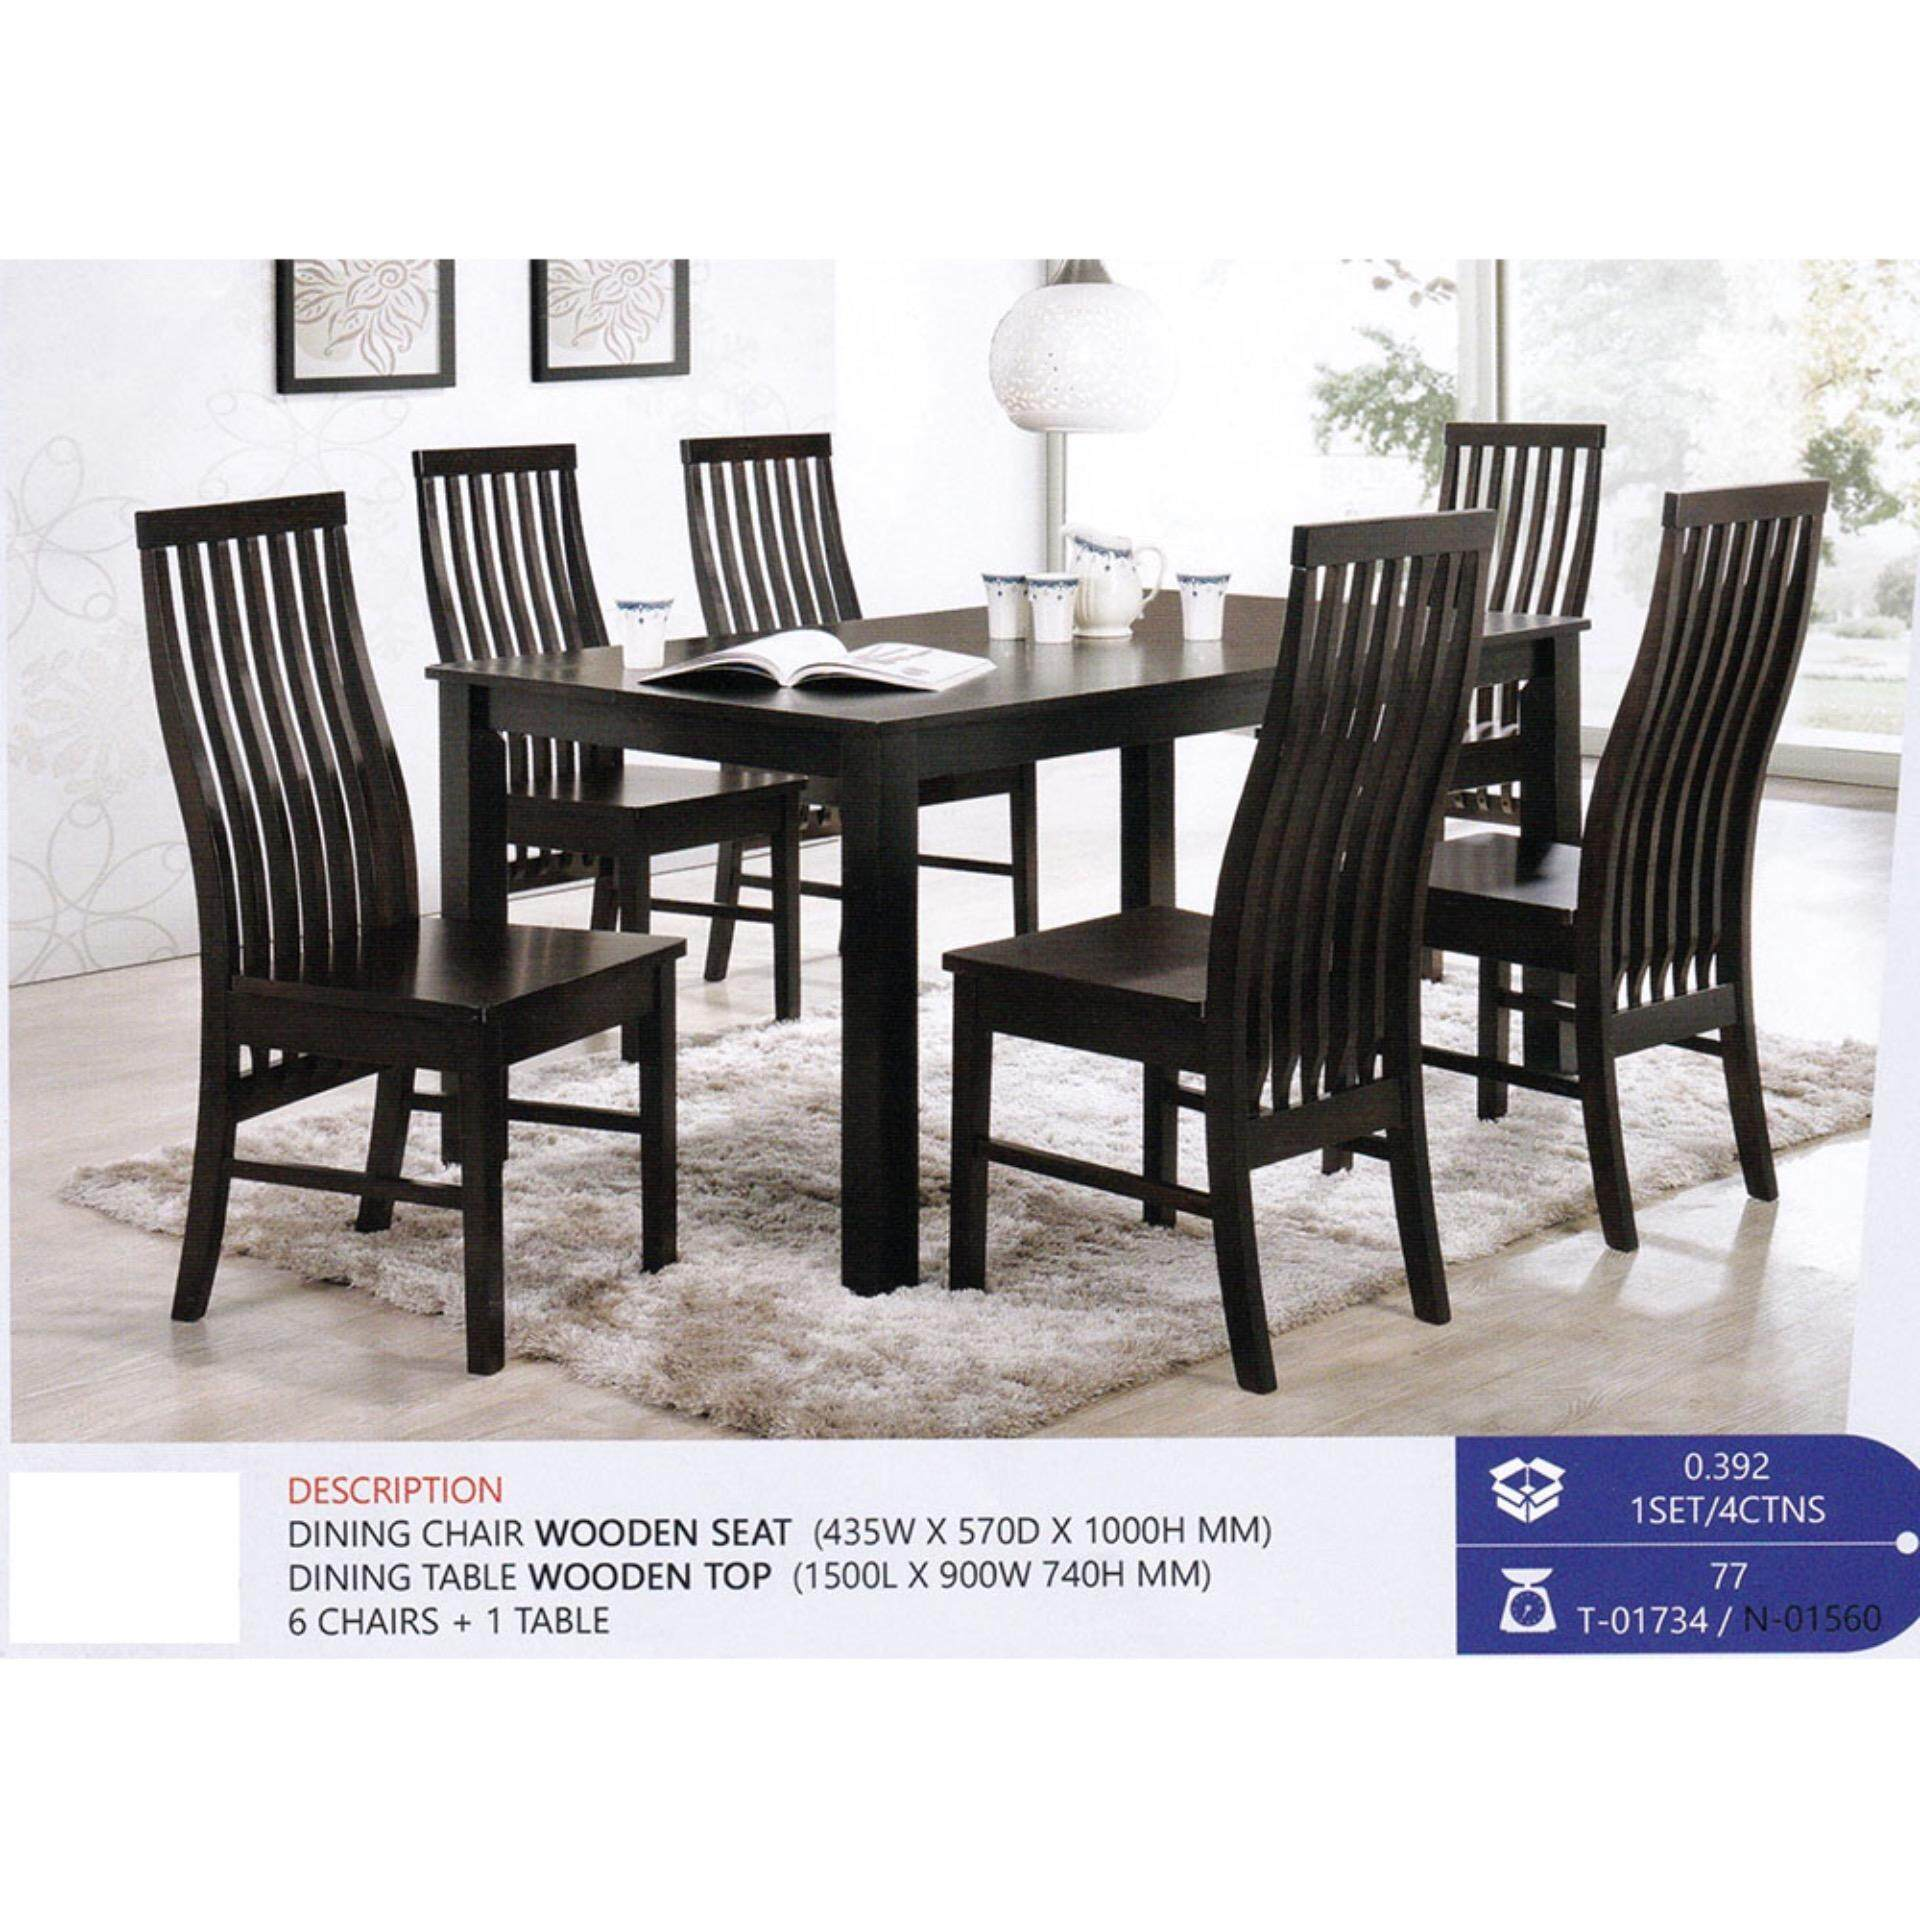 Fully Solid Wood 1+6 Dining Table Chair Set Pre Order 1 Week